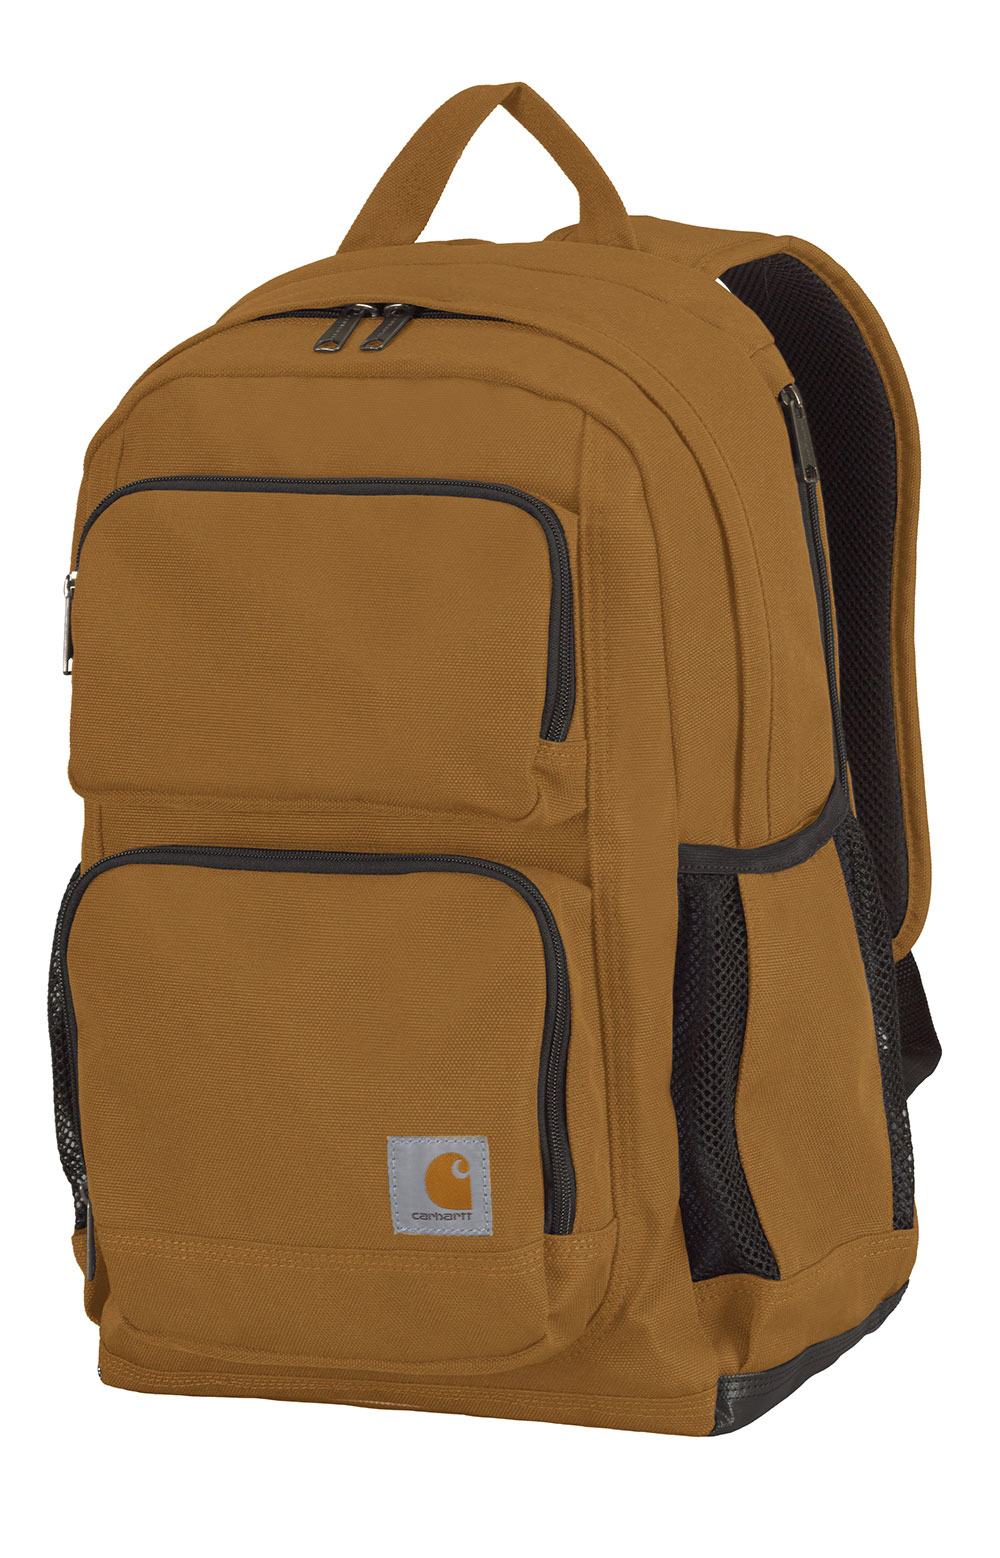 Force Advanced 28L Laptop Backpack - Carhartt Brown